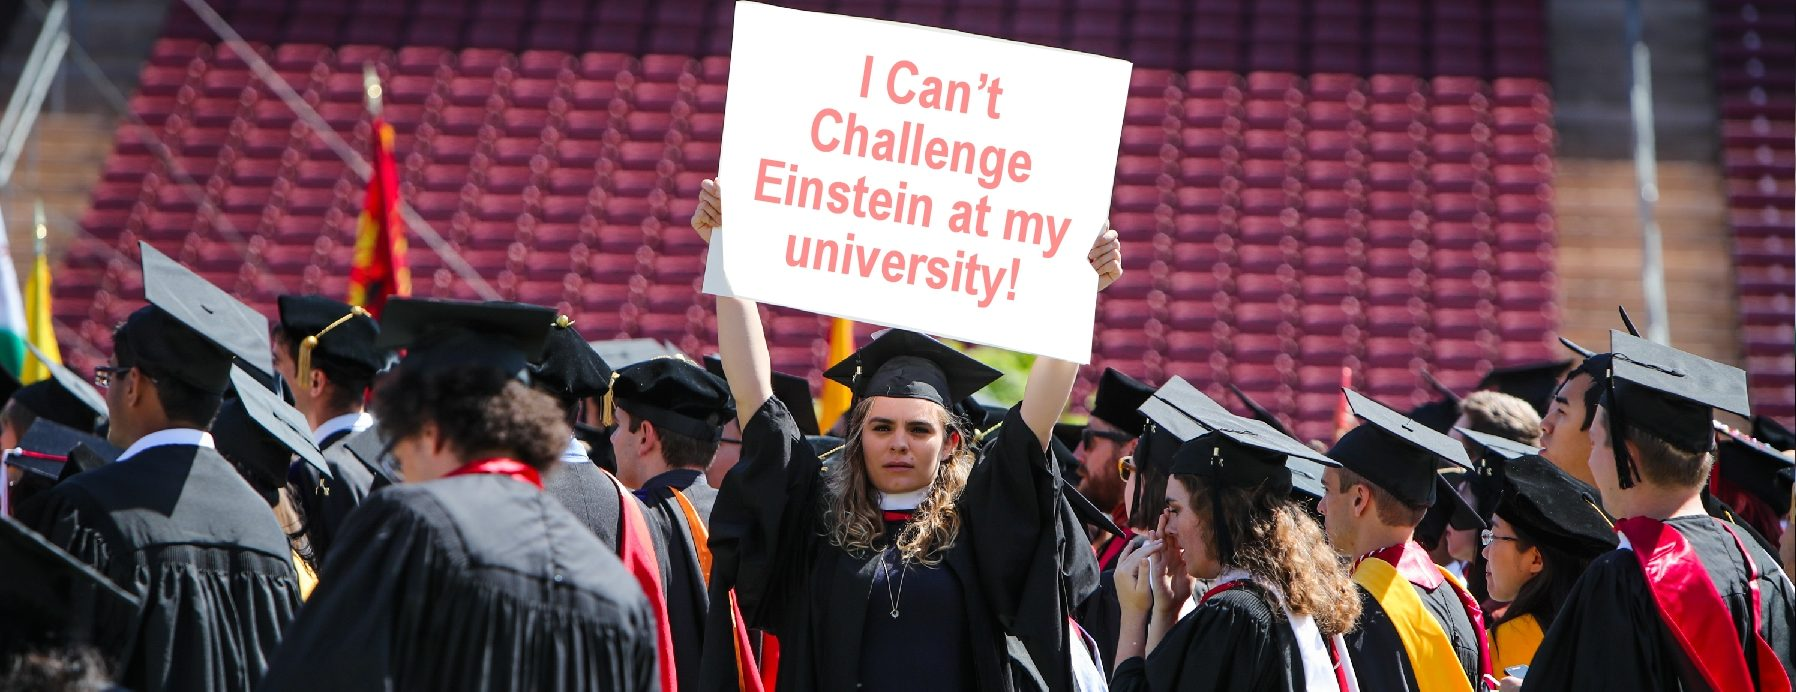 Universities Are Failing at Science Education